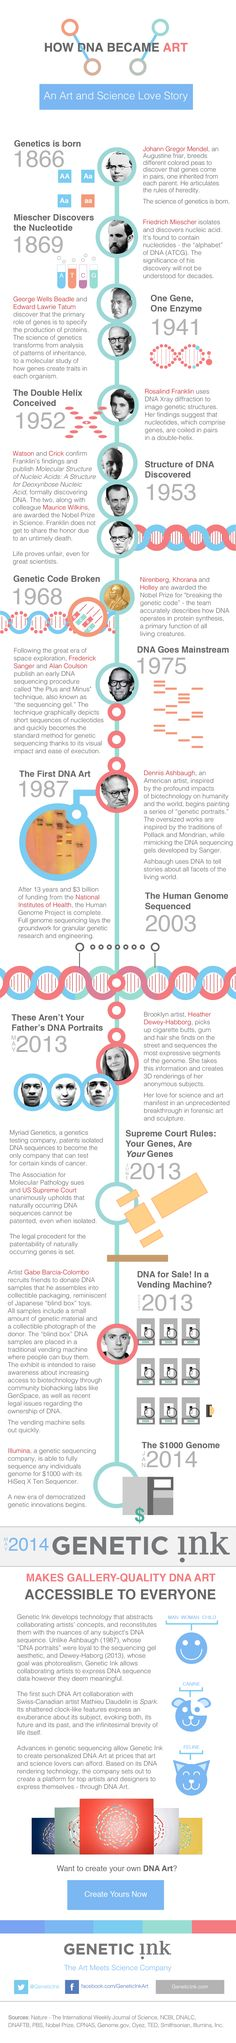 How DNA Became Art [Infographic]